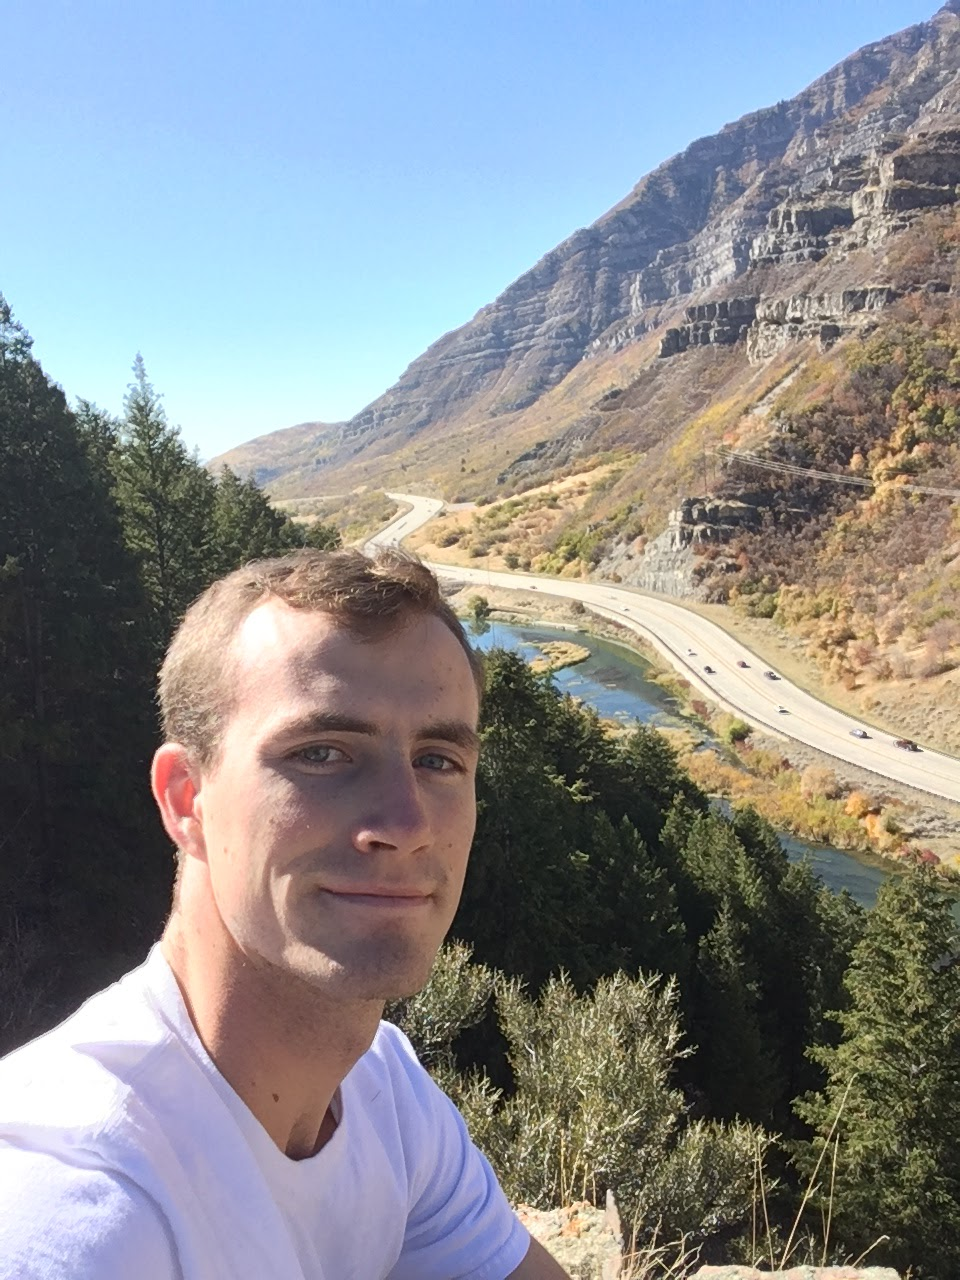 Man at Canyon Overview